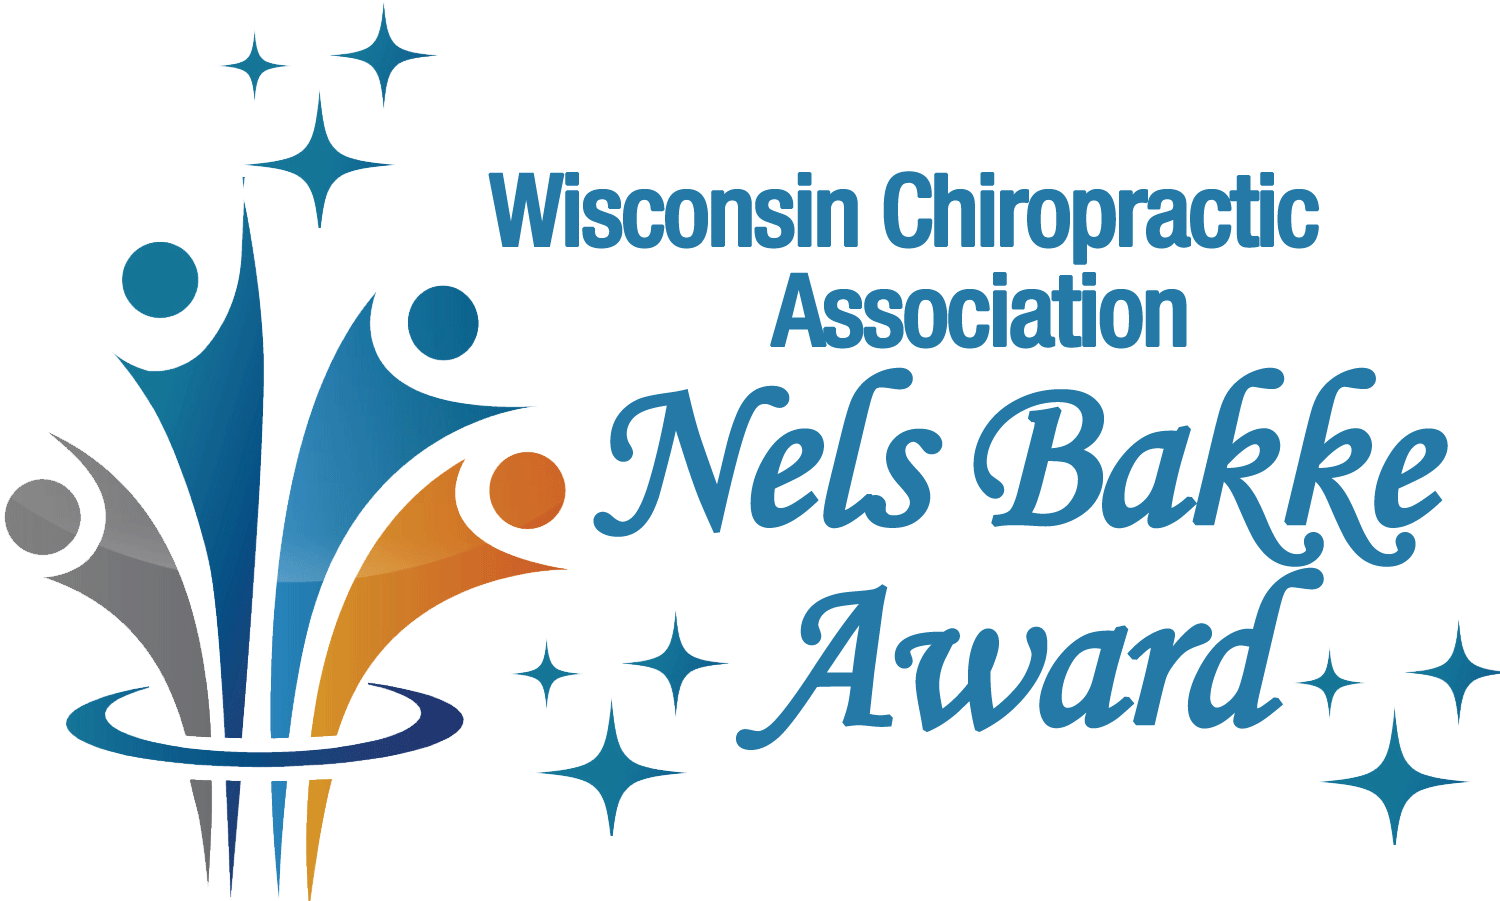 Wisconsin Chiropractors Association Nels Bakke Award Winner